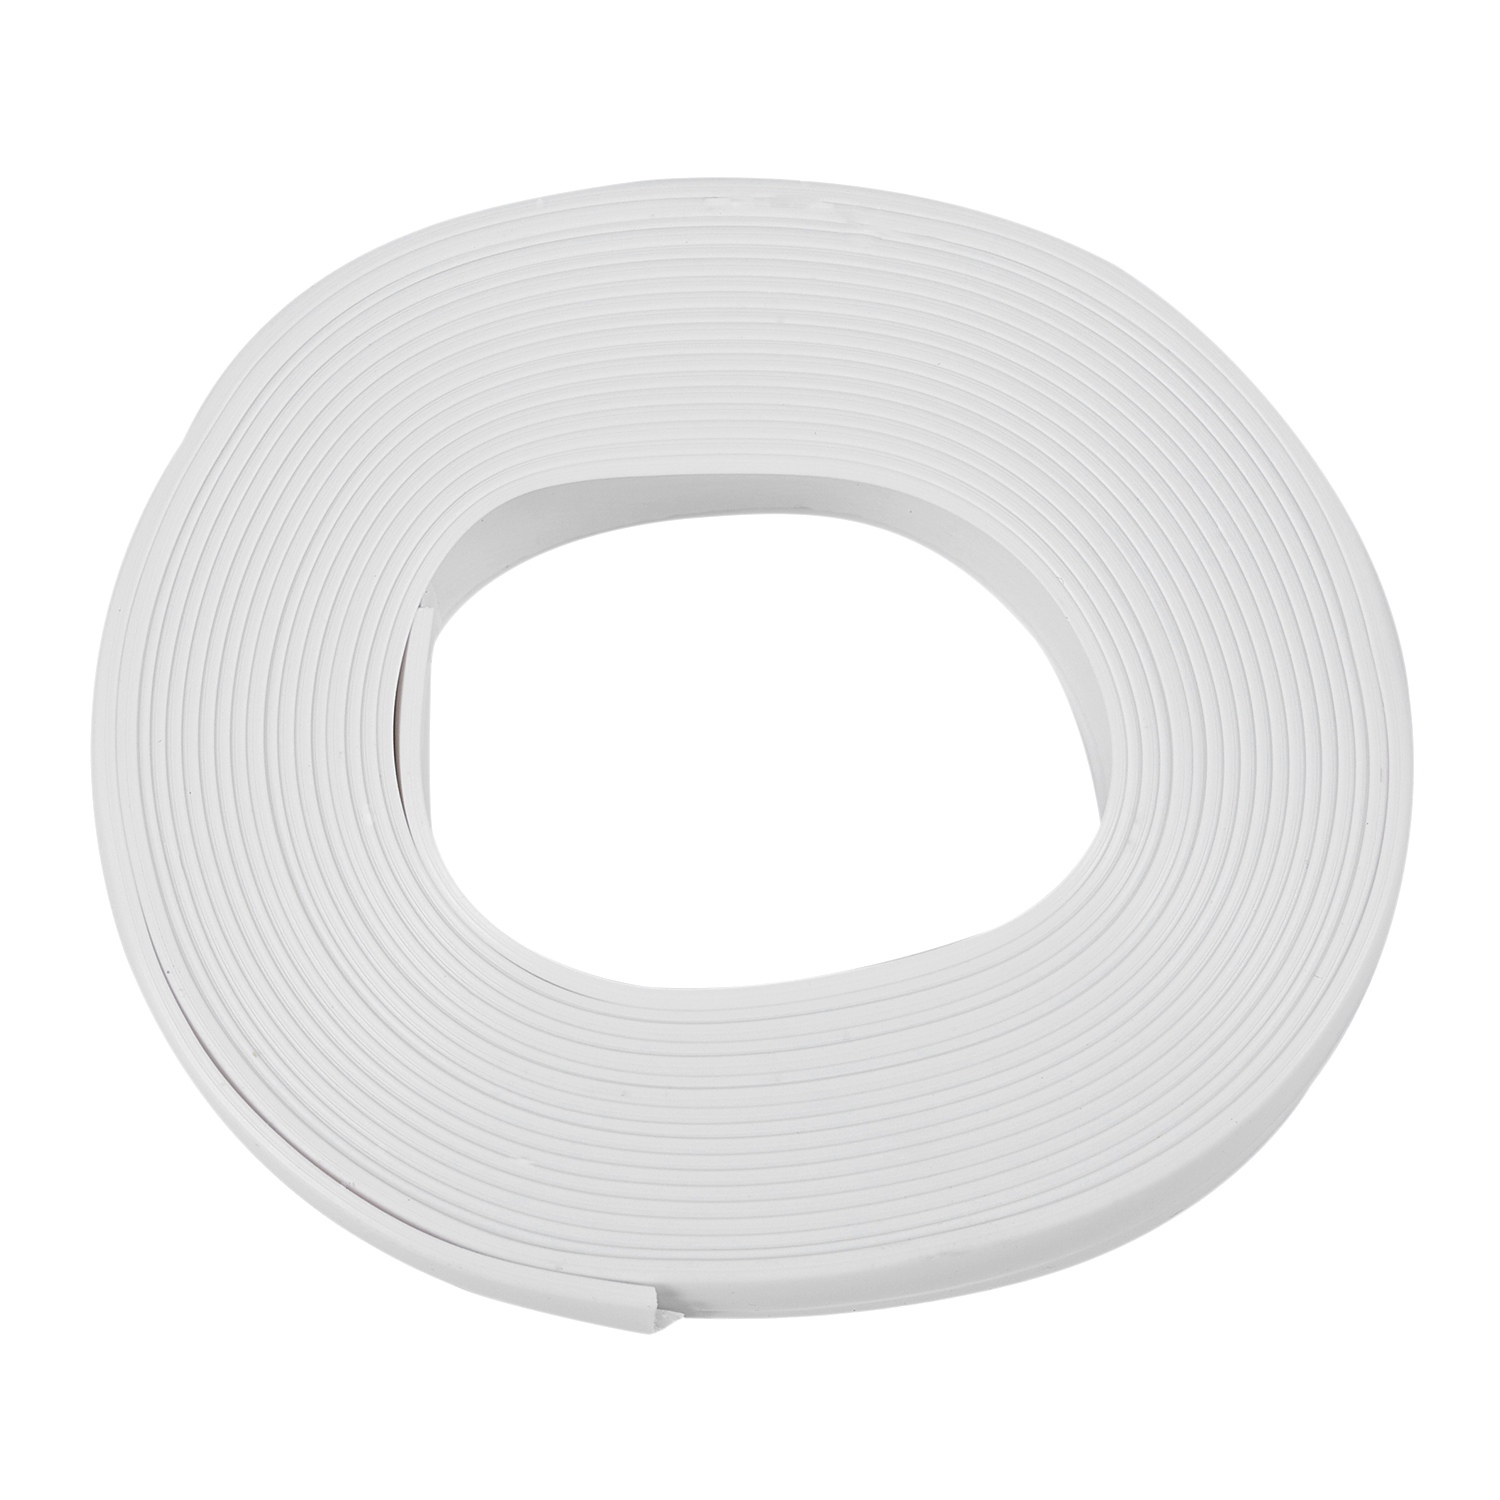 Self Adhesive Bath Wall Sealing Strip Sink Basin Edge Trim 22mmx3.2m White